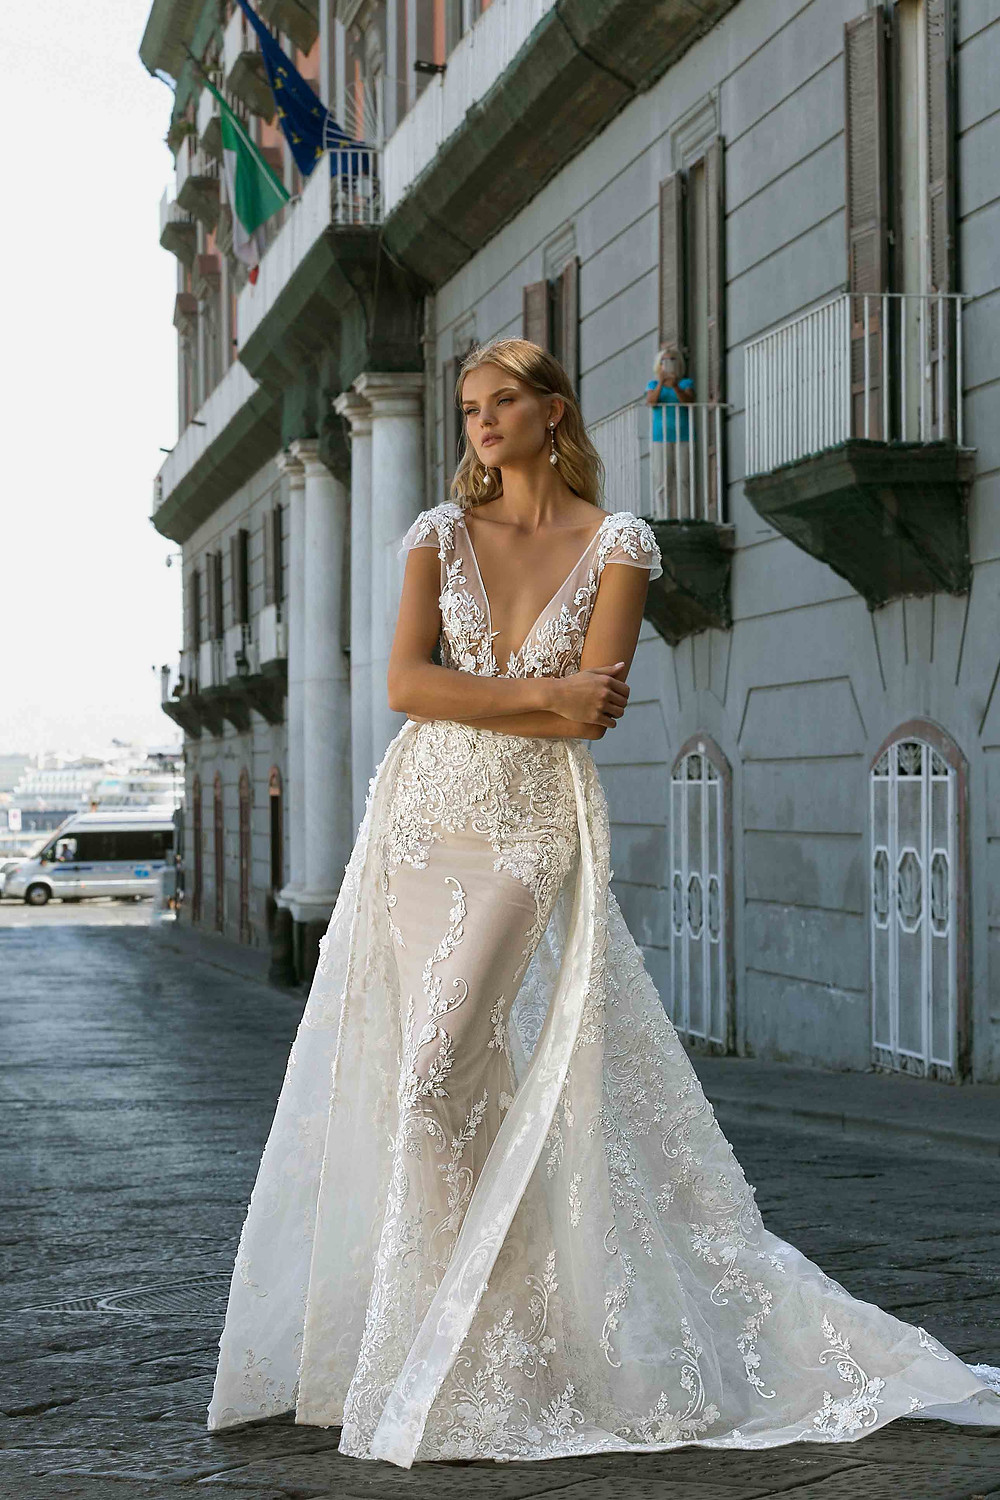 A lace mermaid wedding dress, with low v neckline and detachable skirt